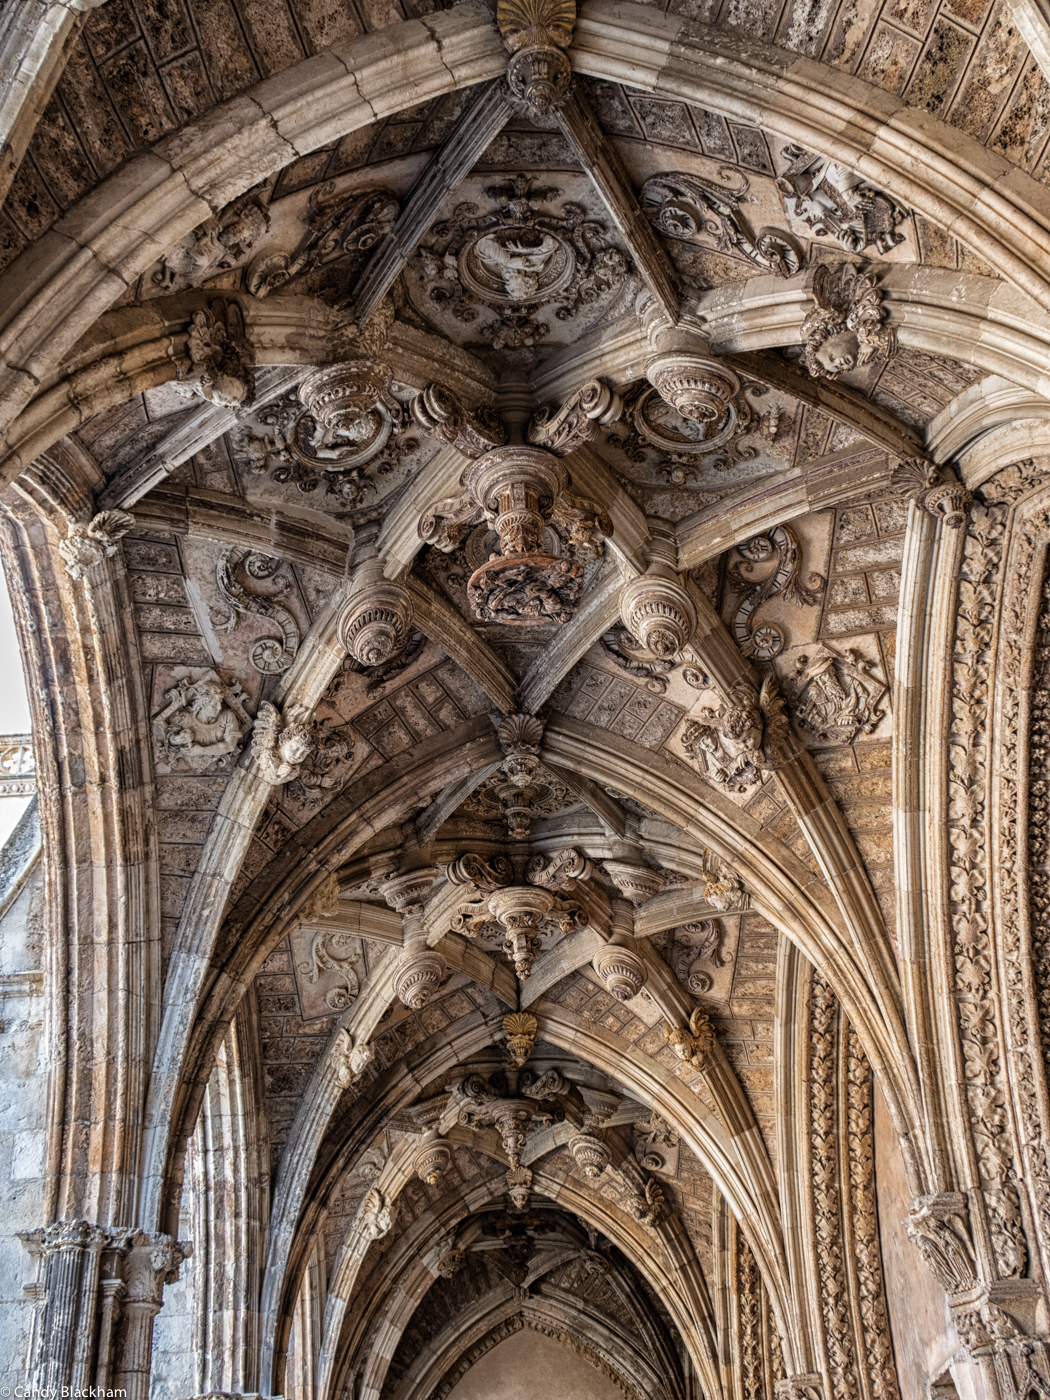 Ceiling of the Cloister of Leon Cathedral